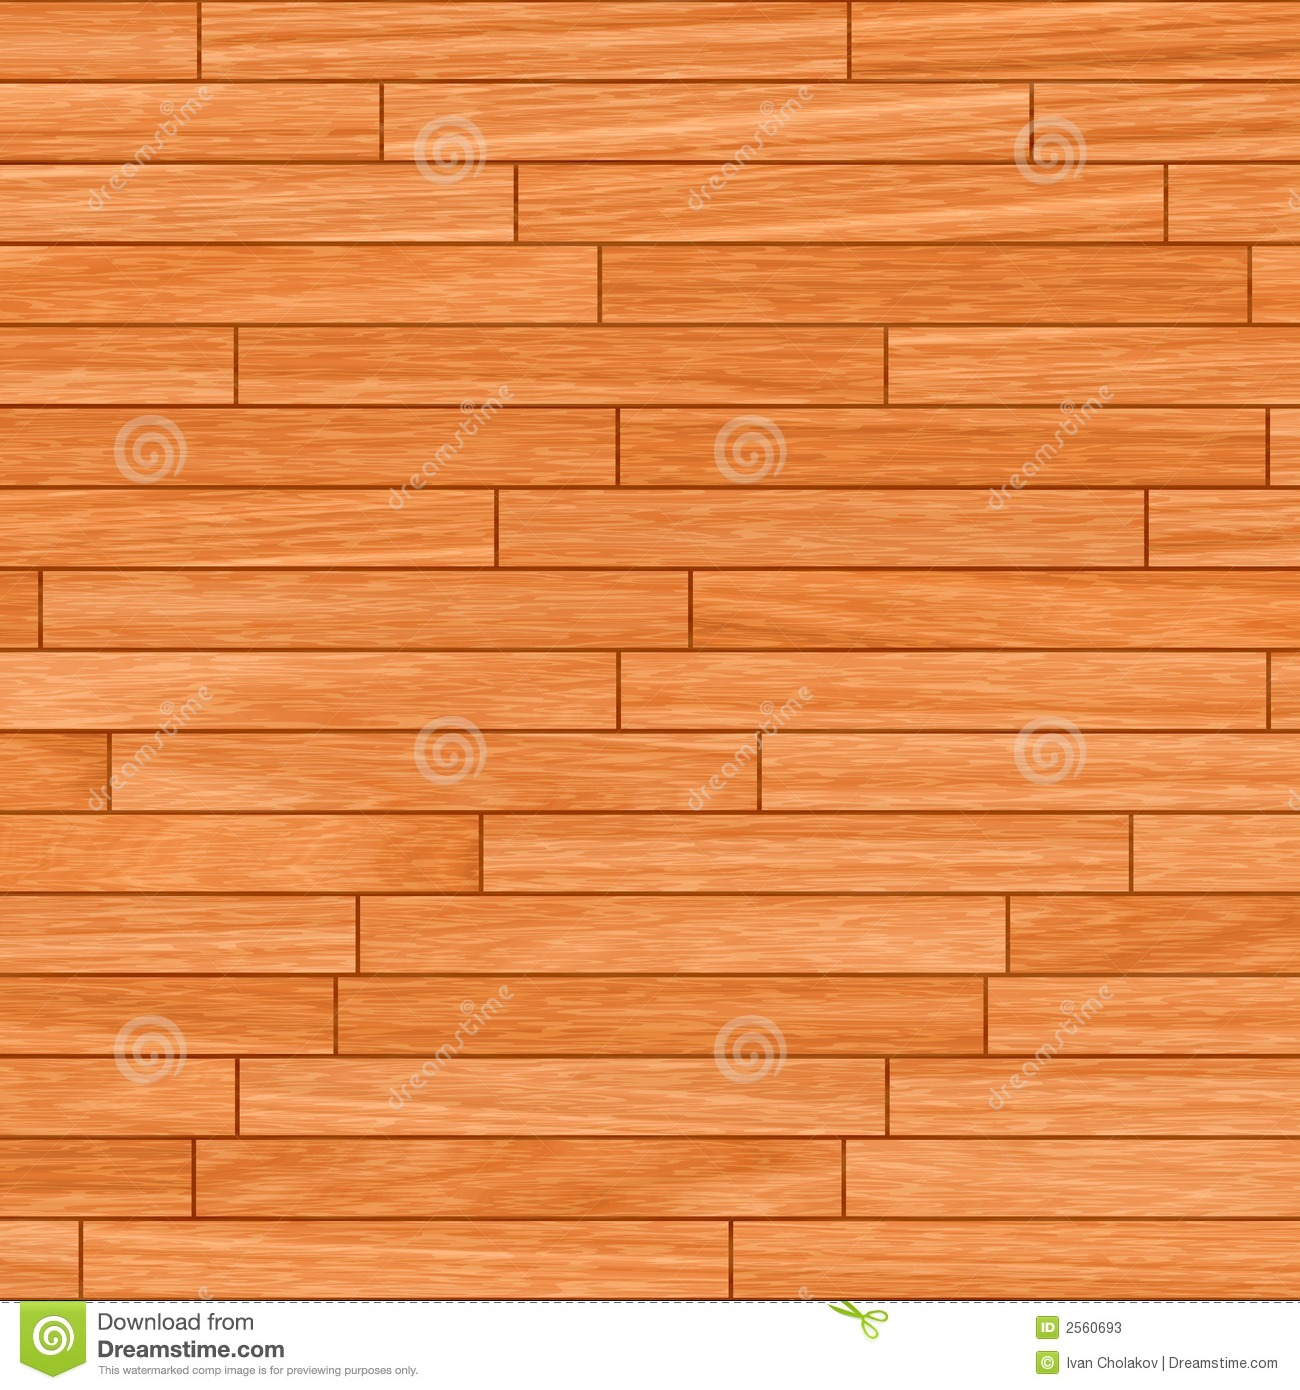 Wooden floor clipart clipground for Art laminate flooring